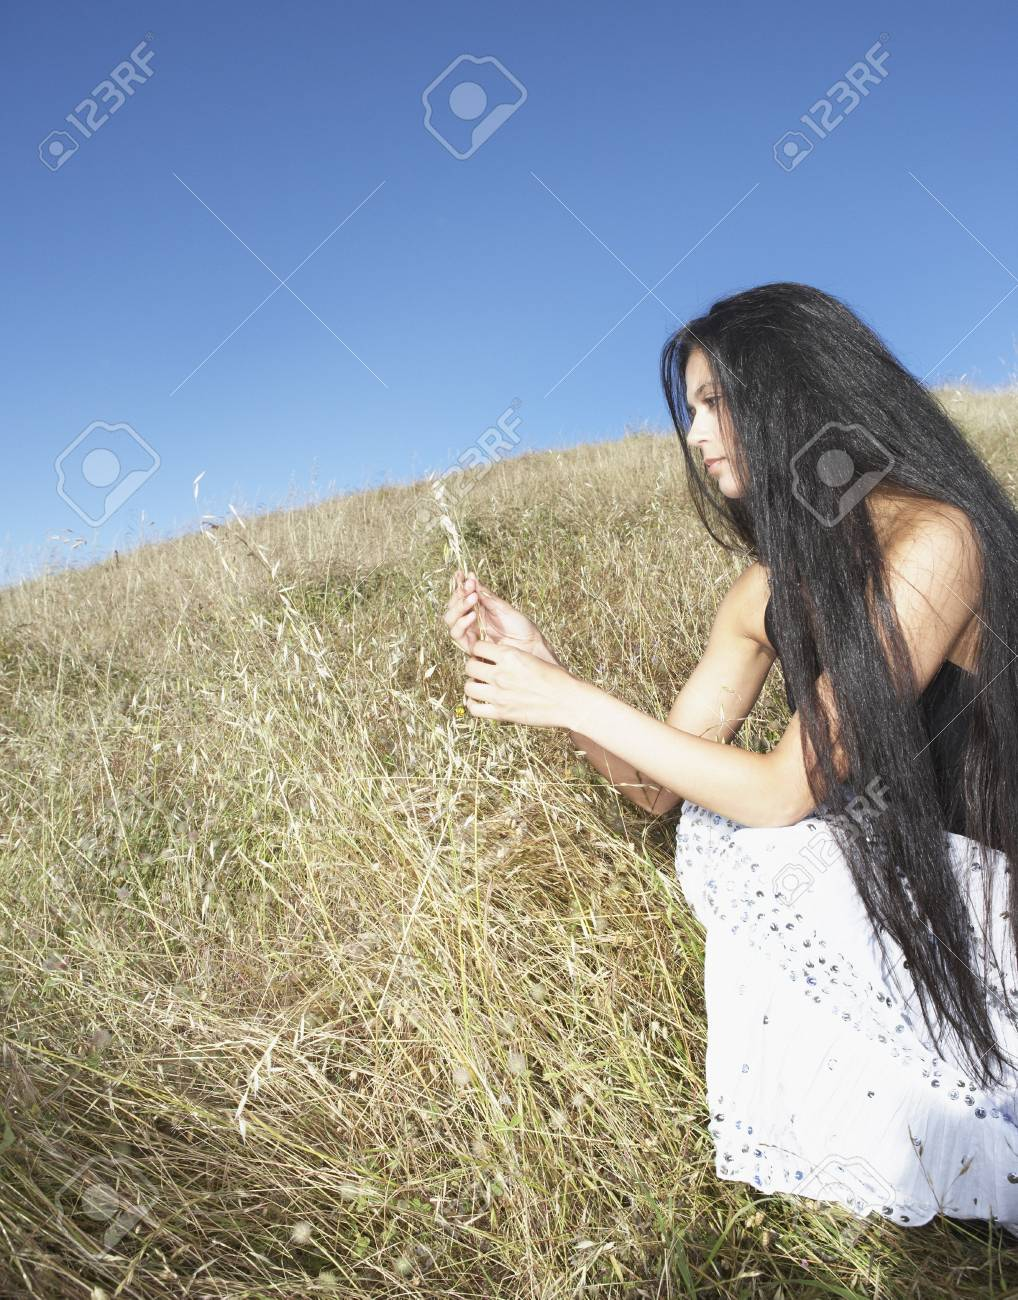 Woman sitting in grassy field Stock Photo - 16071402